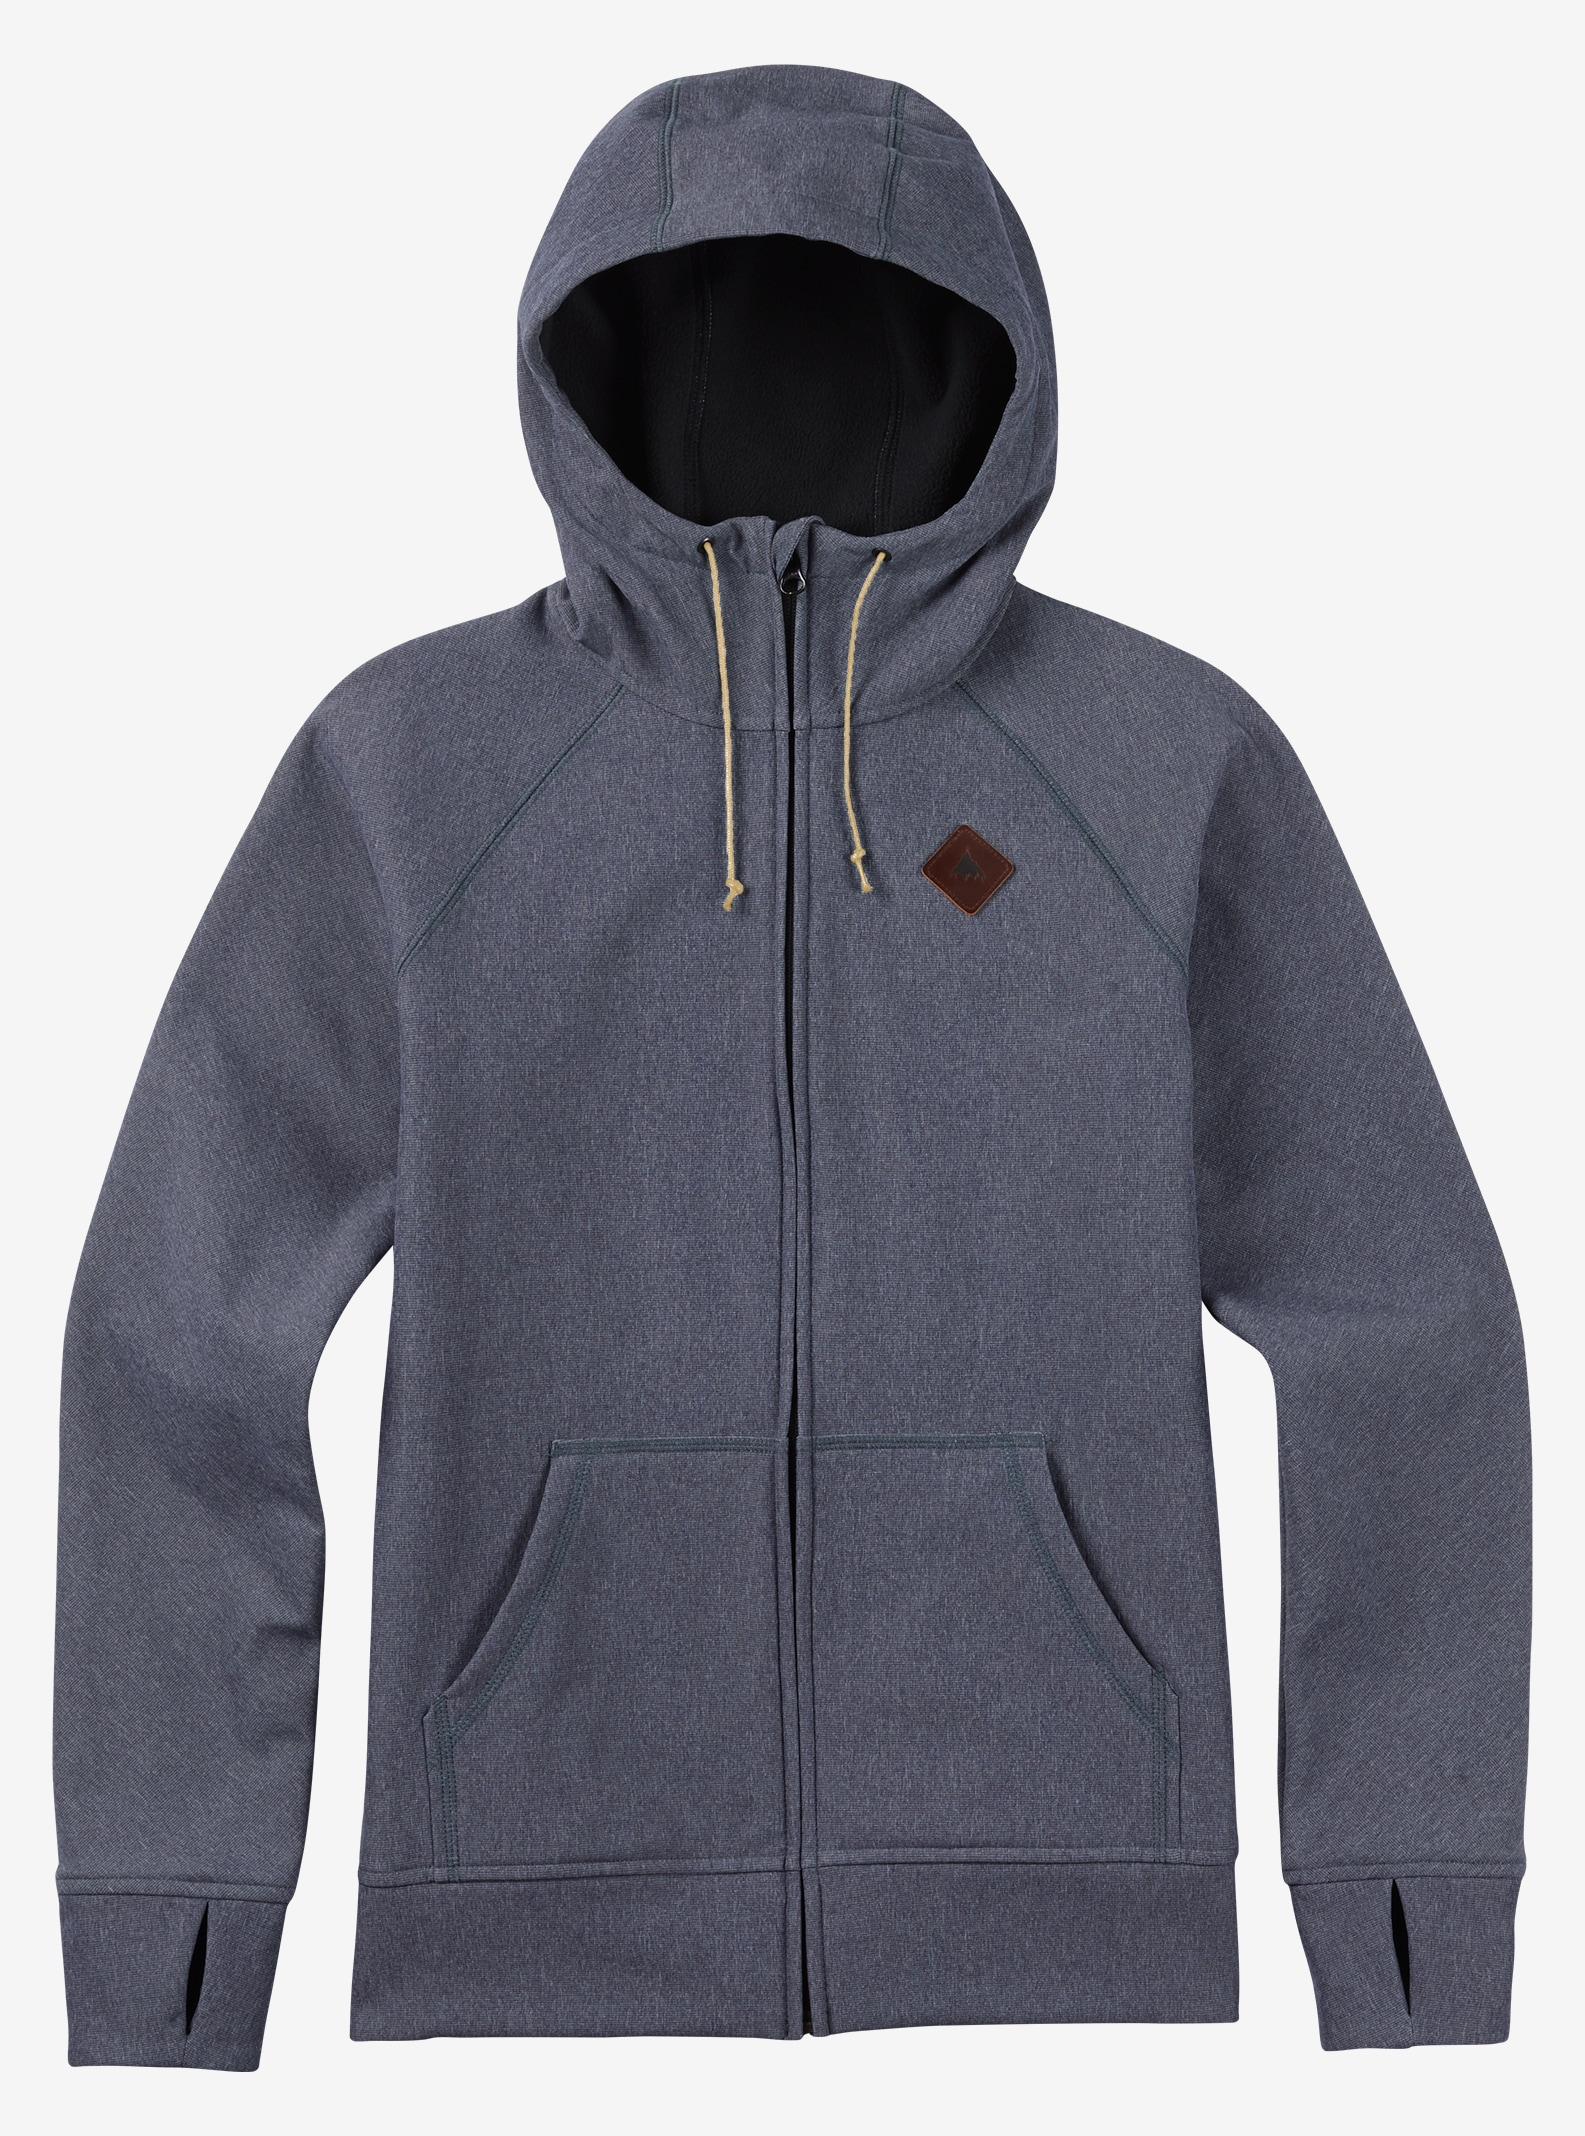 Burton Scoop Hoodie shown in Denim Heather